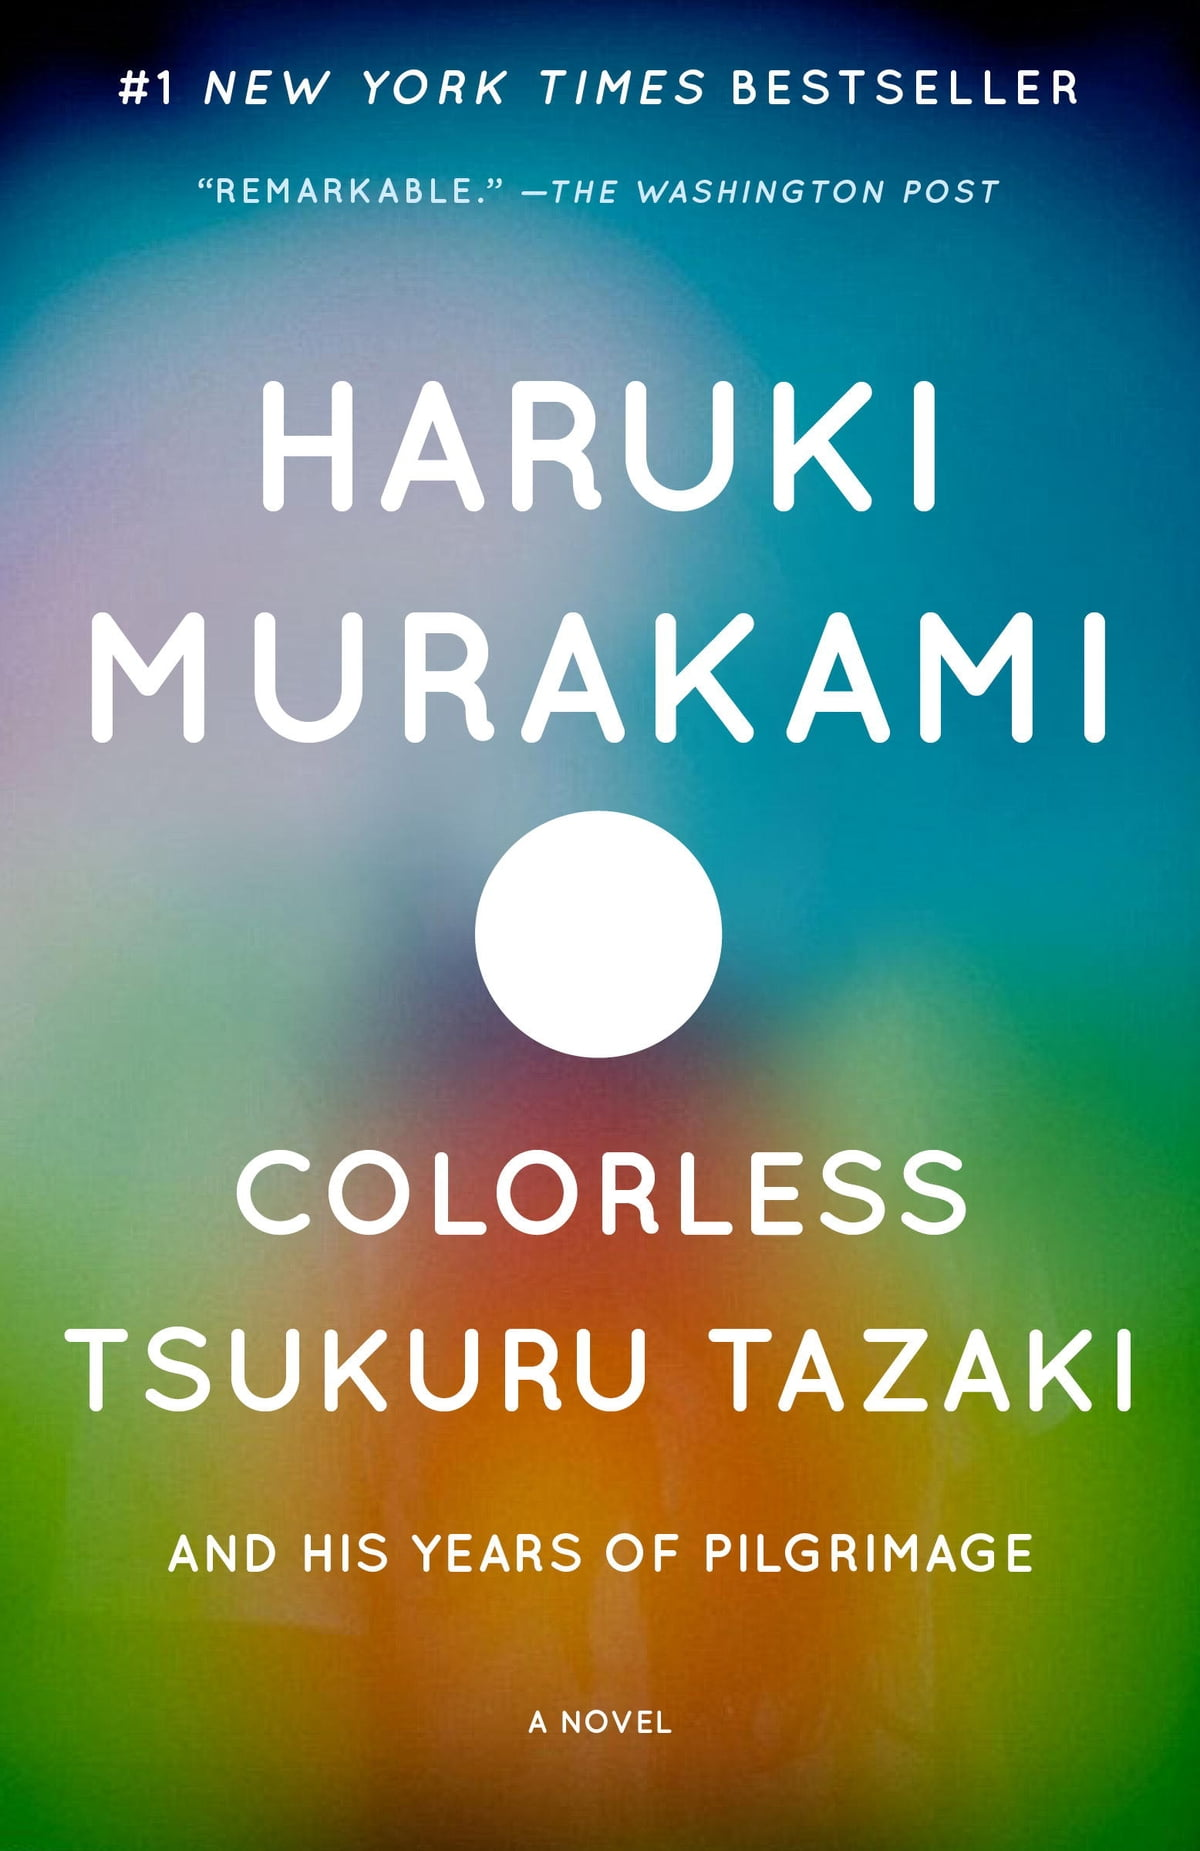 Infinite jest ebook by david foster wallace 9780316073851 colorless tsukuru tazaki and his years of pilgrimage a novel ebook by haruki murakami fandeluxe Image collections